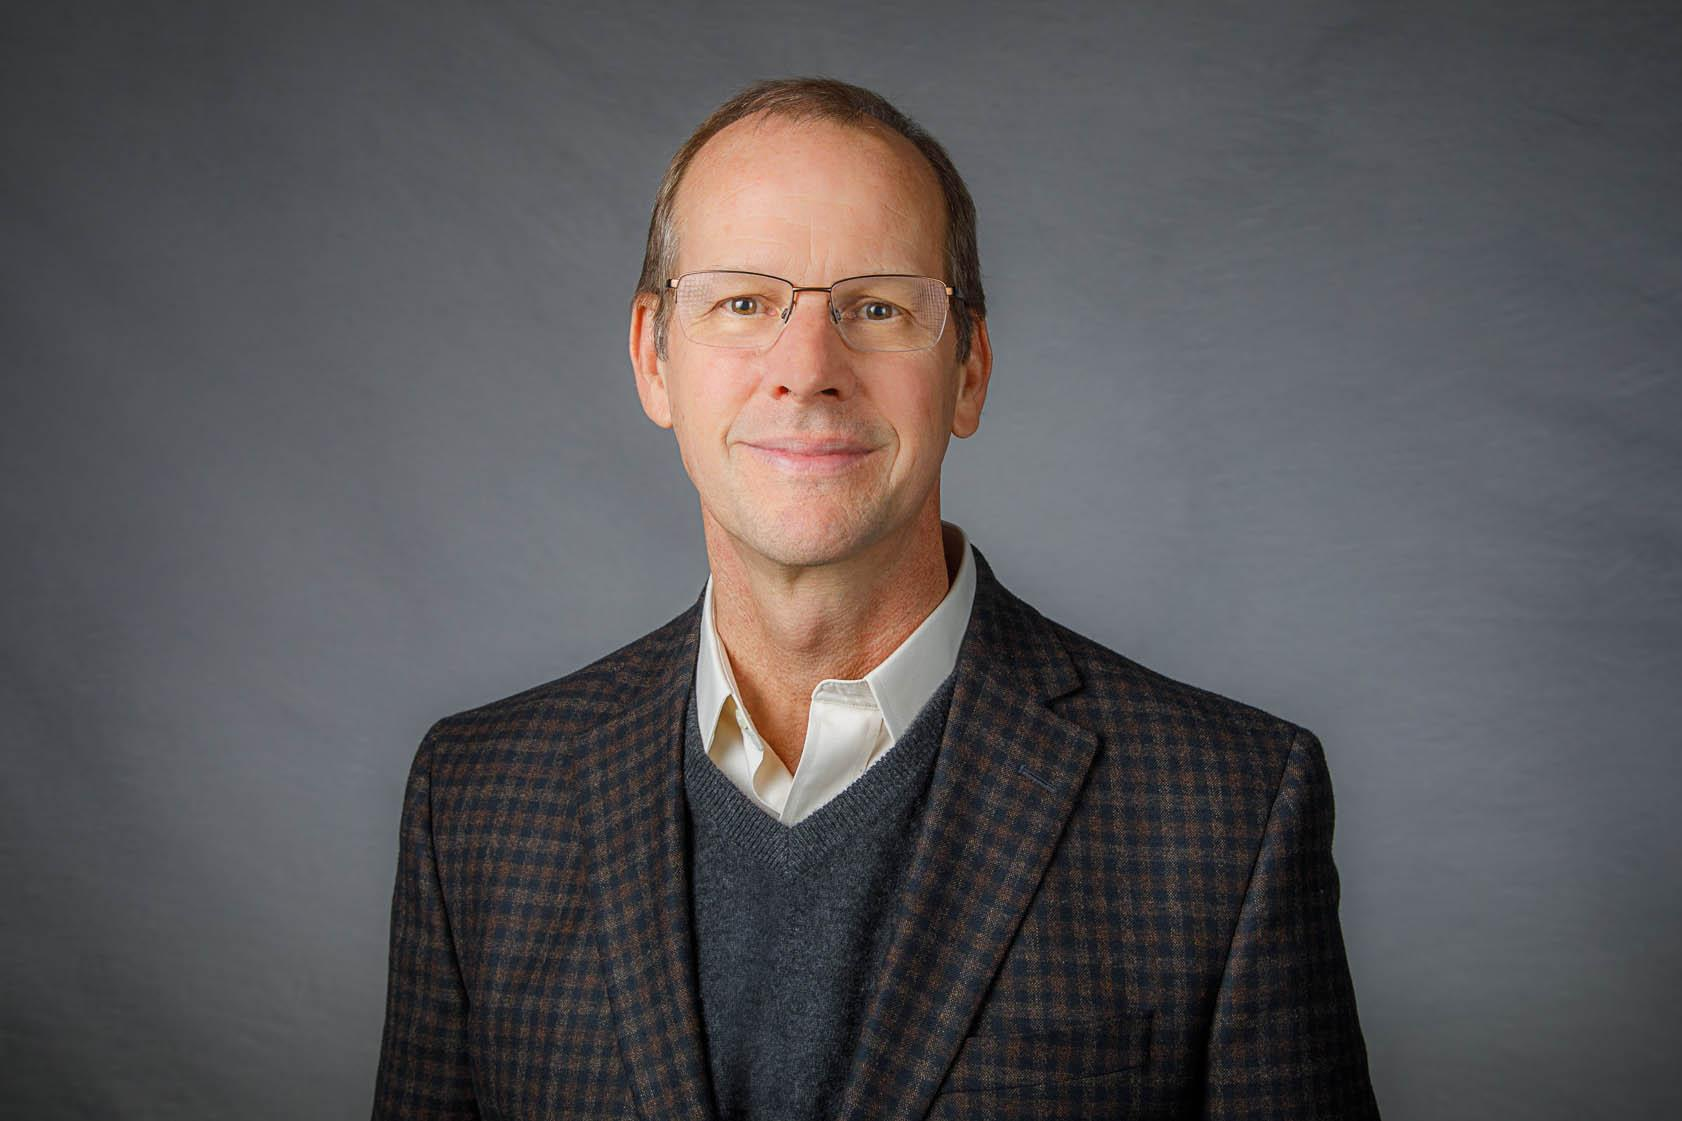 Mark Williams, Ph.D., chair of the University of Kentucky Department of Horticulture